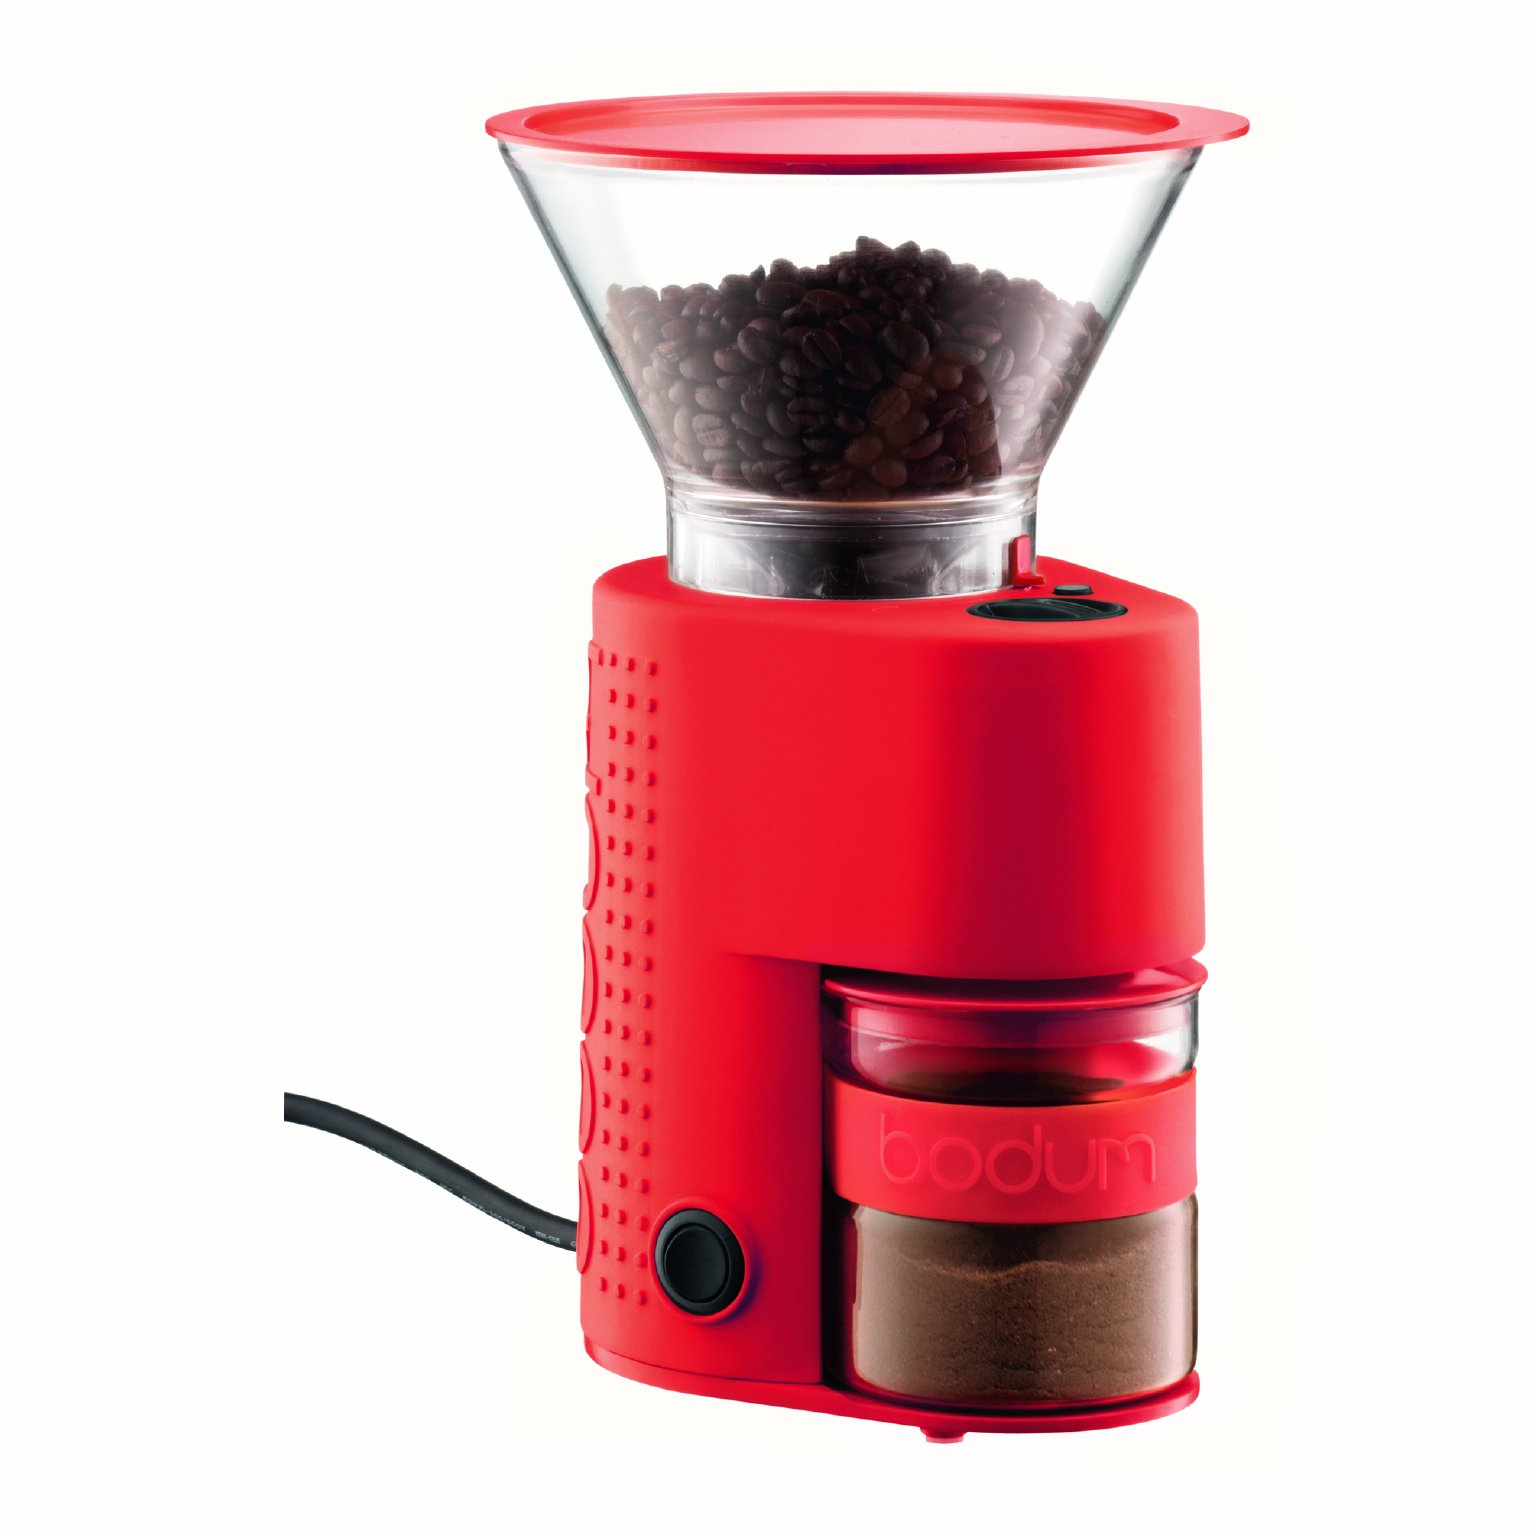 Bodum BISTRO Burr Grinder, Electronic Coffee Grinder with Continuously Adjustable Grind, Red by Bodum